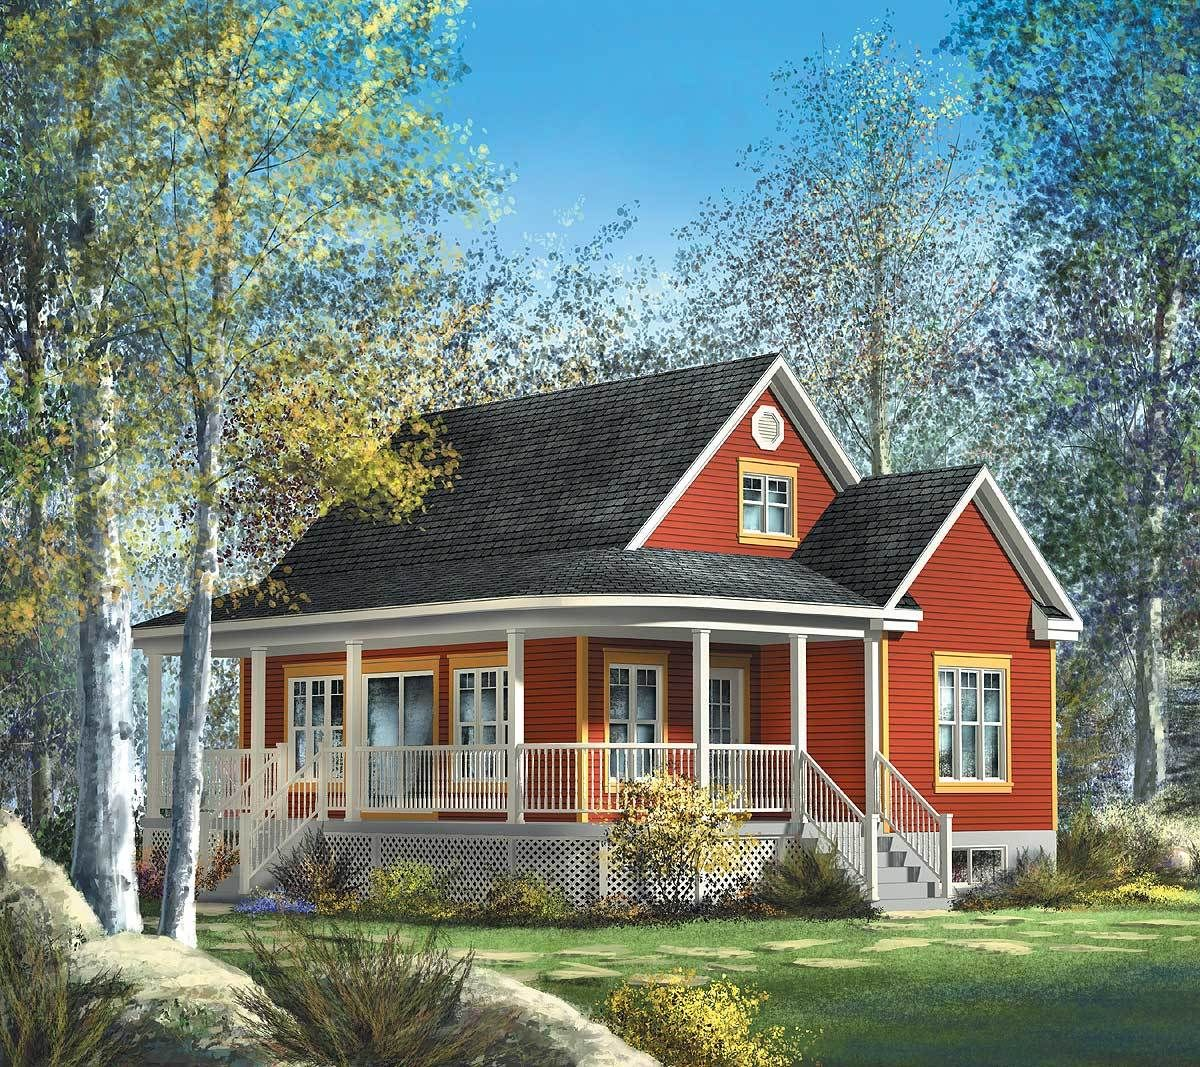 Plan 80559pm Cute Country Cottage Country Cottage House Plans Cottage House Plans Cottage Plan